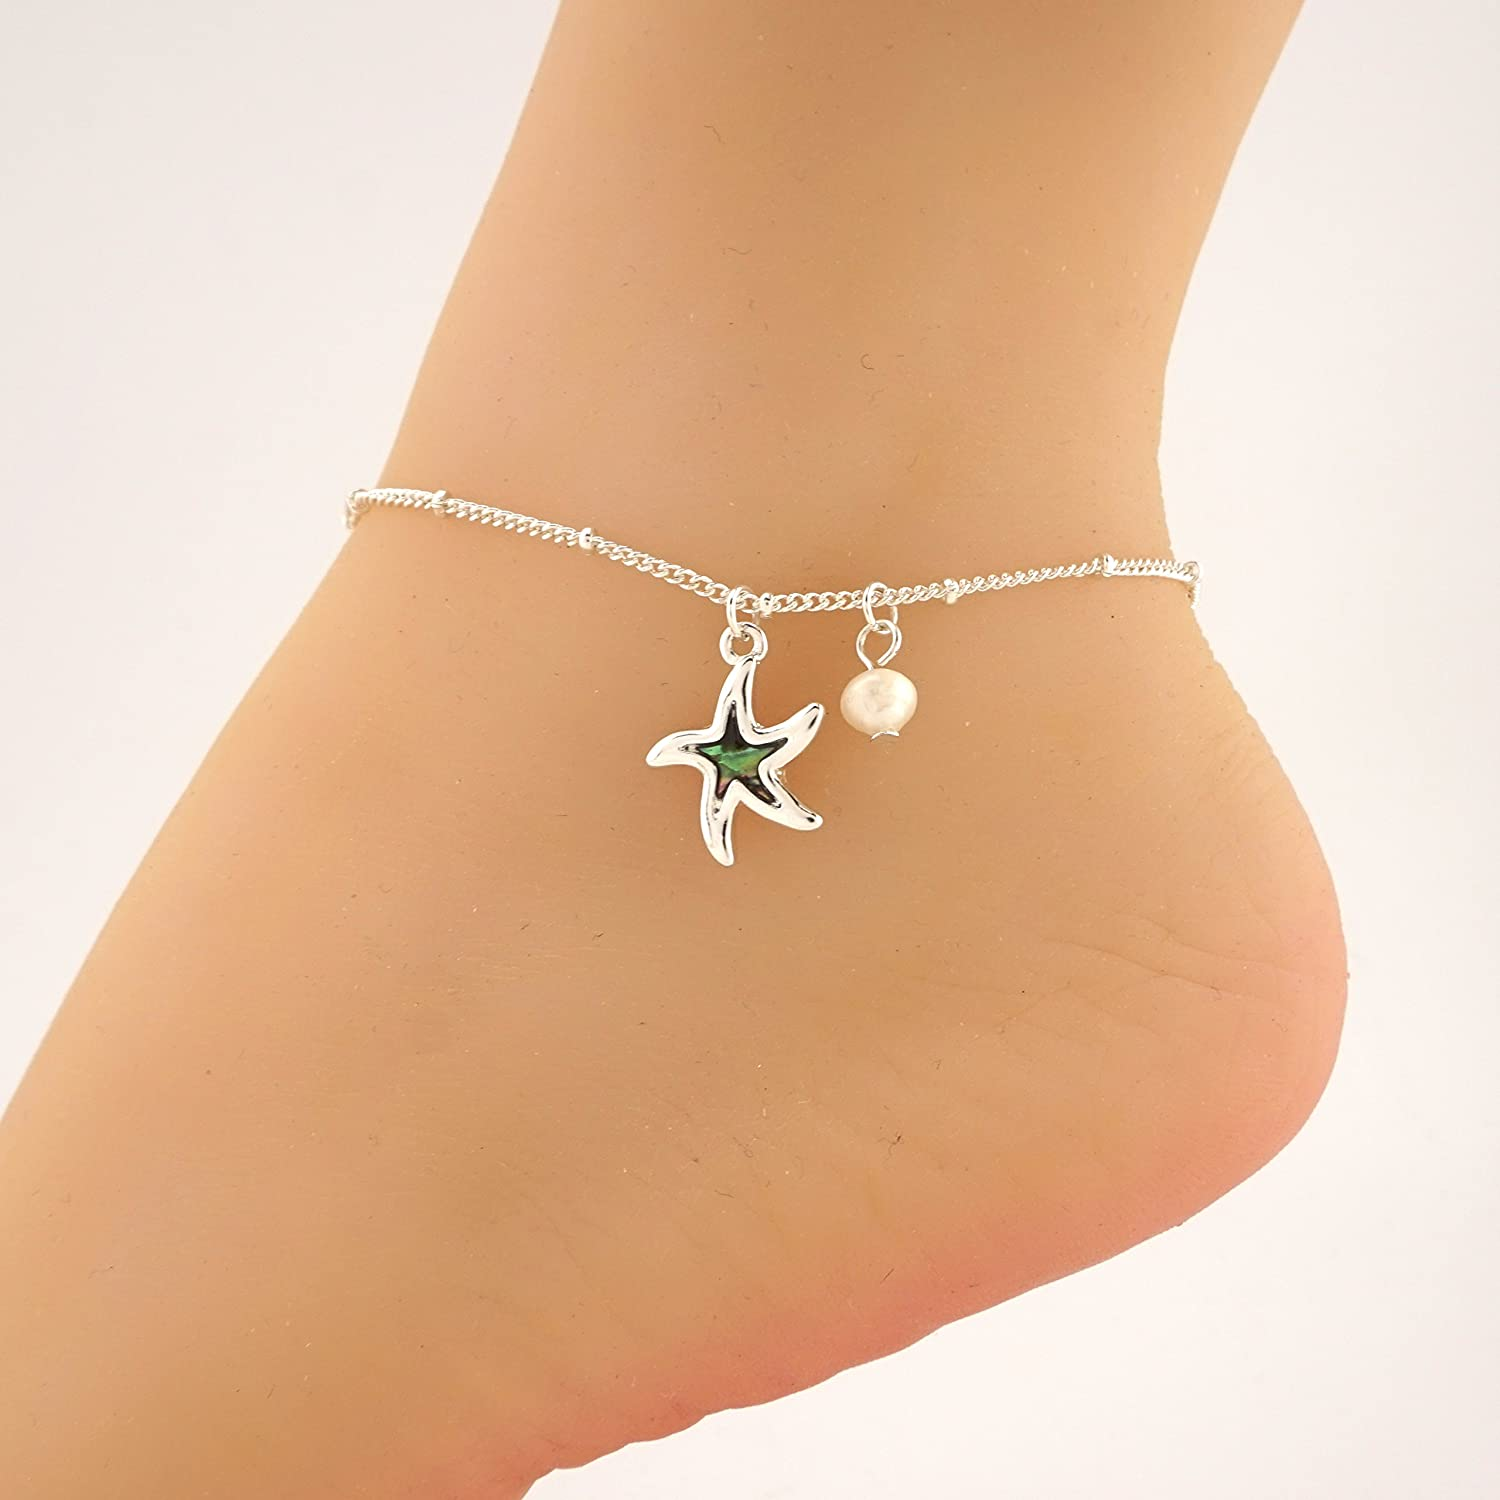 Abalone Charm Starfish Anklet Ankle Bracelet - Fashion Hut Jewelry